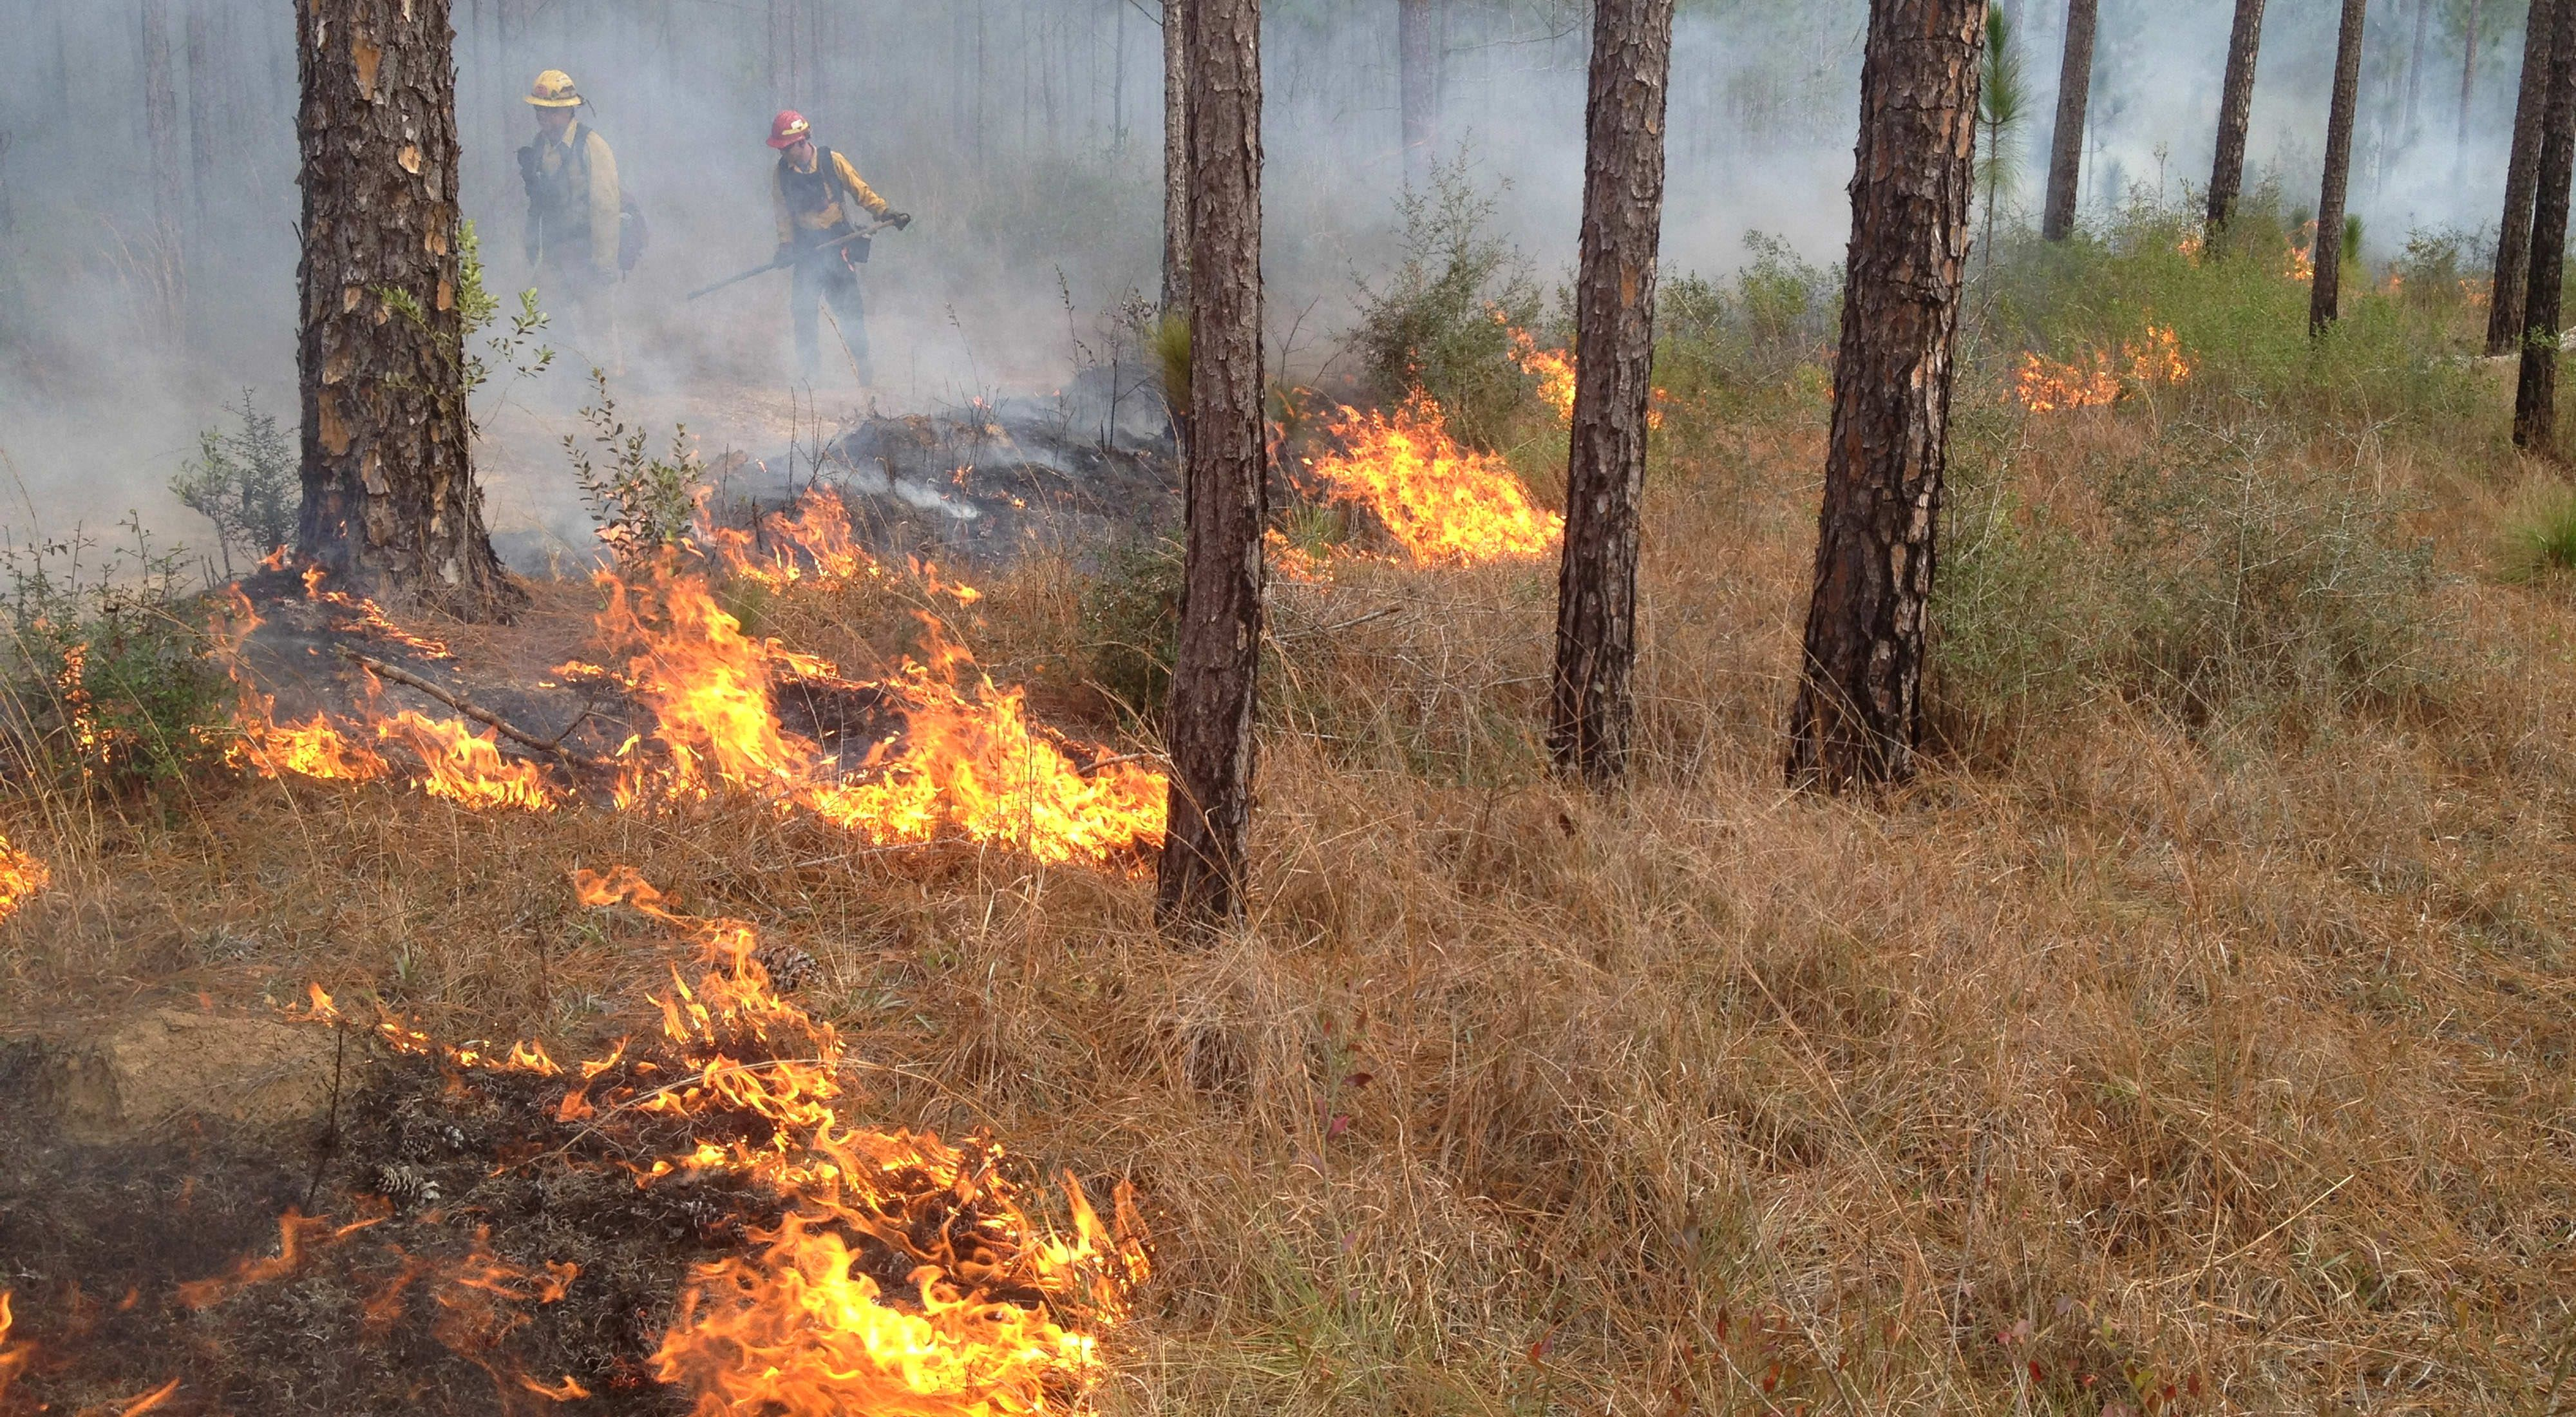 A prescribed burn at the Sweetbay Bogs Preserve